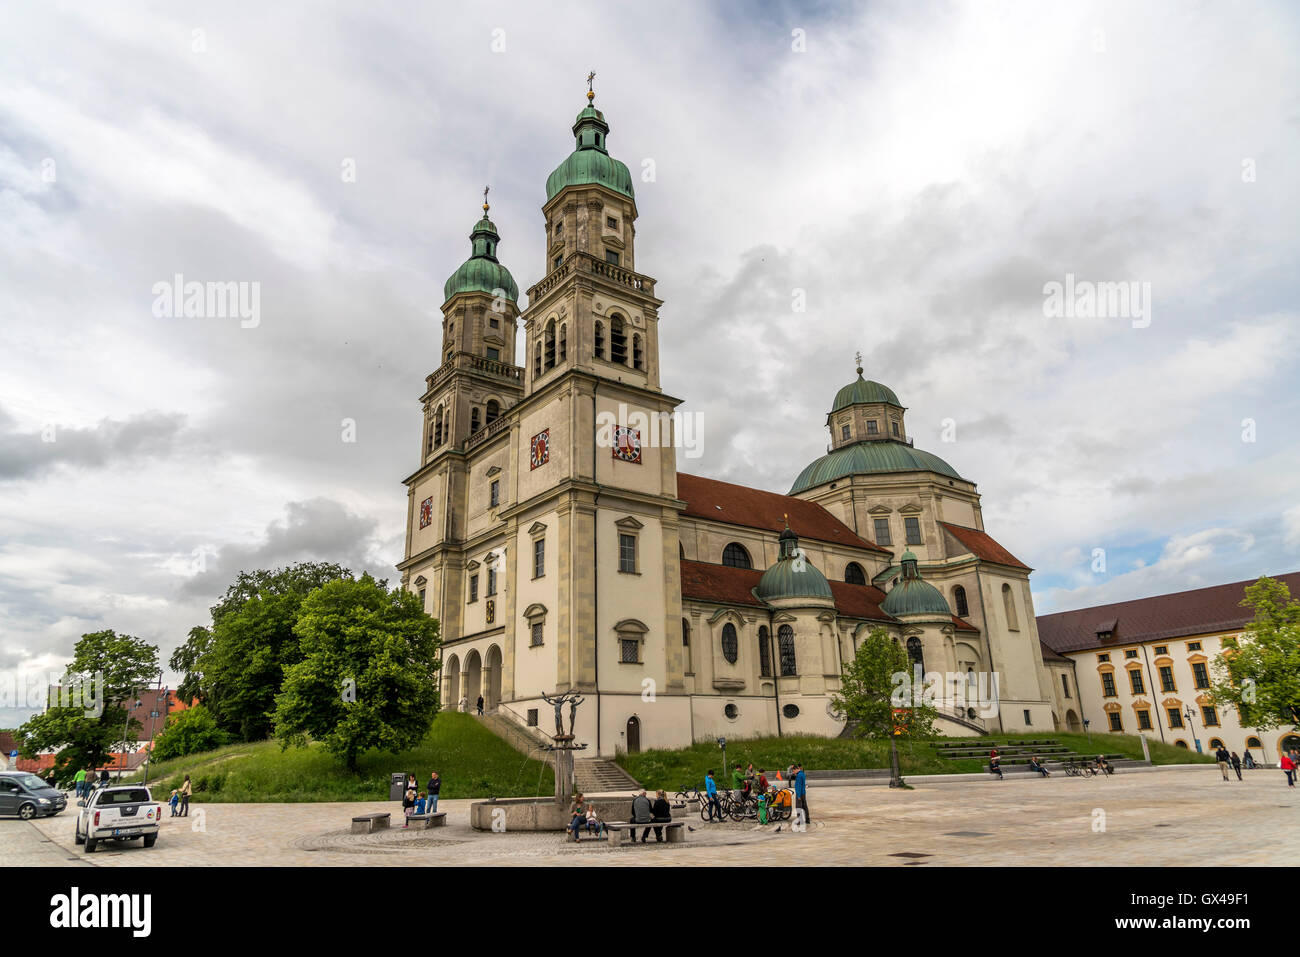 basilika st lorenz in kempten allg u bayern deutschland kirche st lorenz basilika in. Black Bedroom Furniture Sets. Home Design Ideas